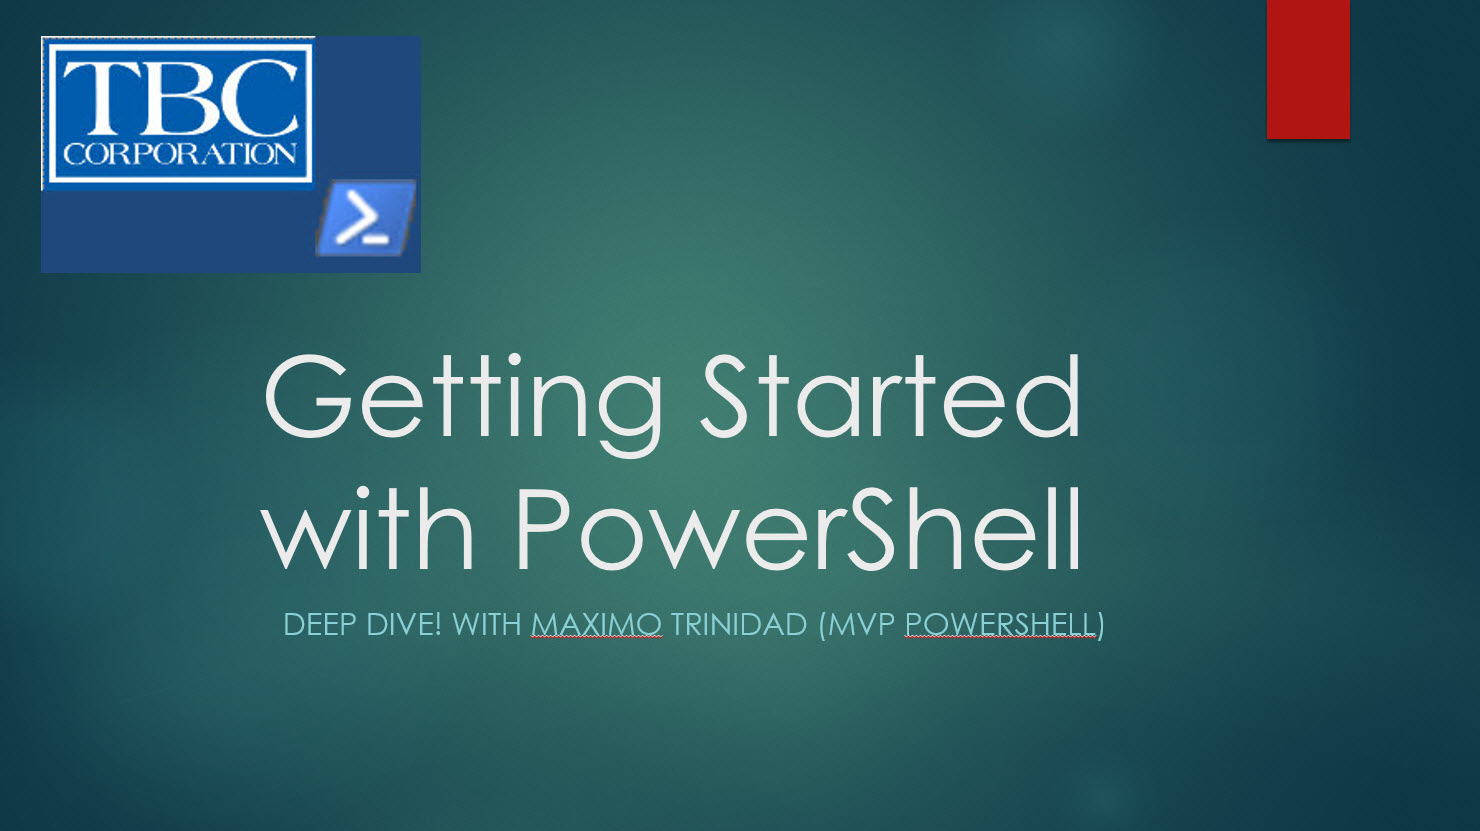 GettingStartedPowerShell_01_9-28-2015 jpg